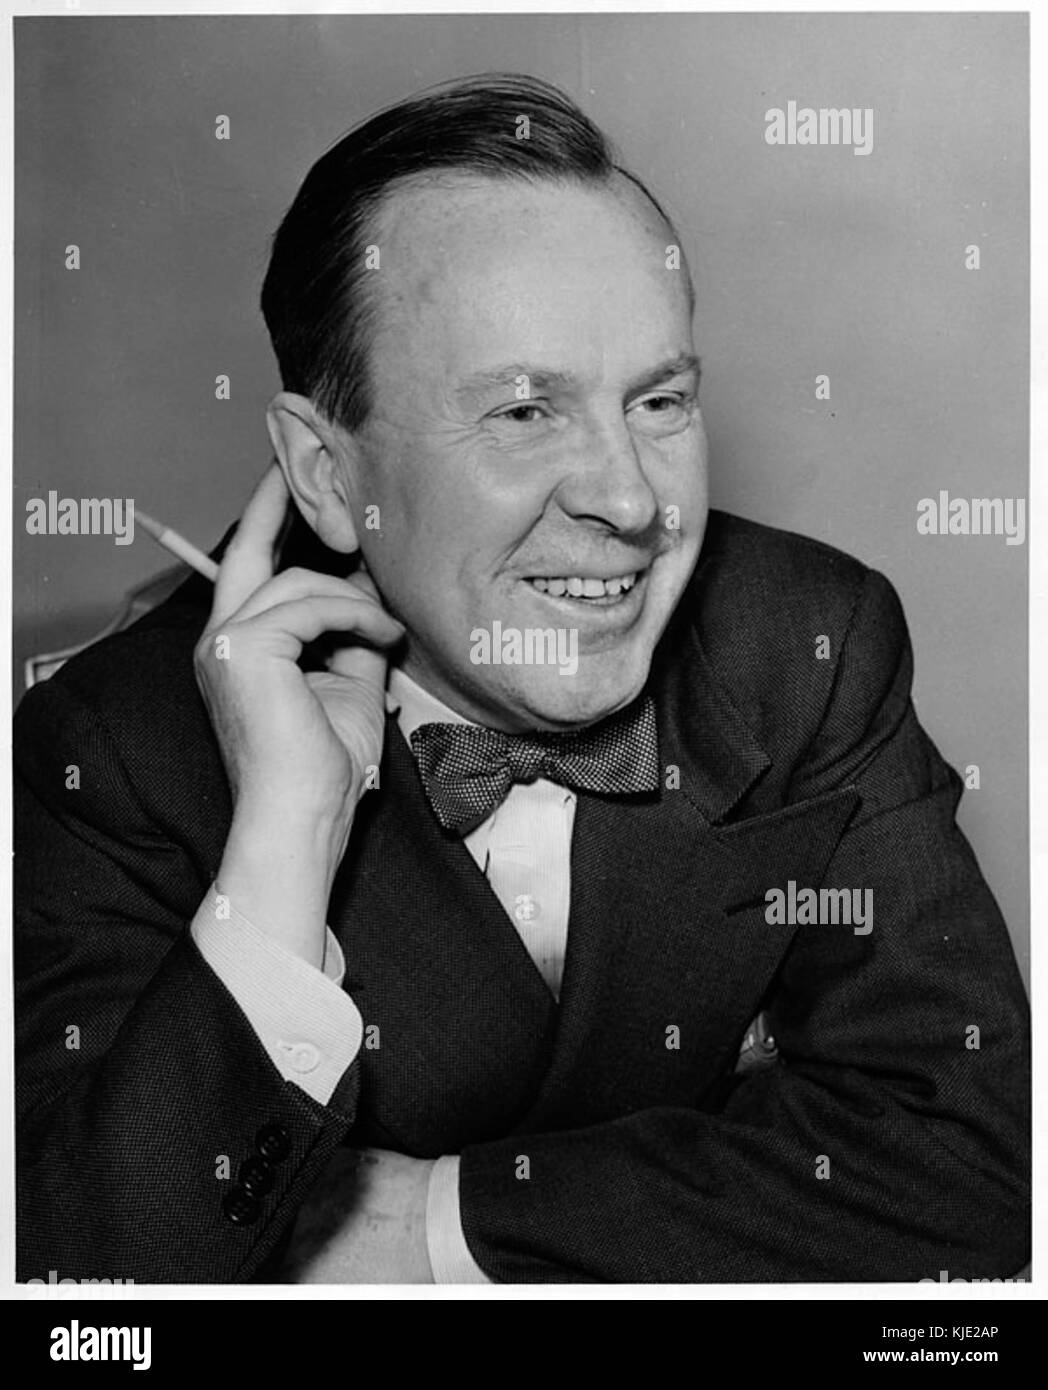 a biography of lester b pearson a canadian politician